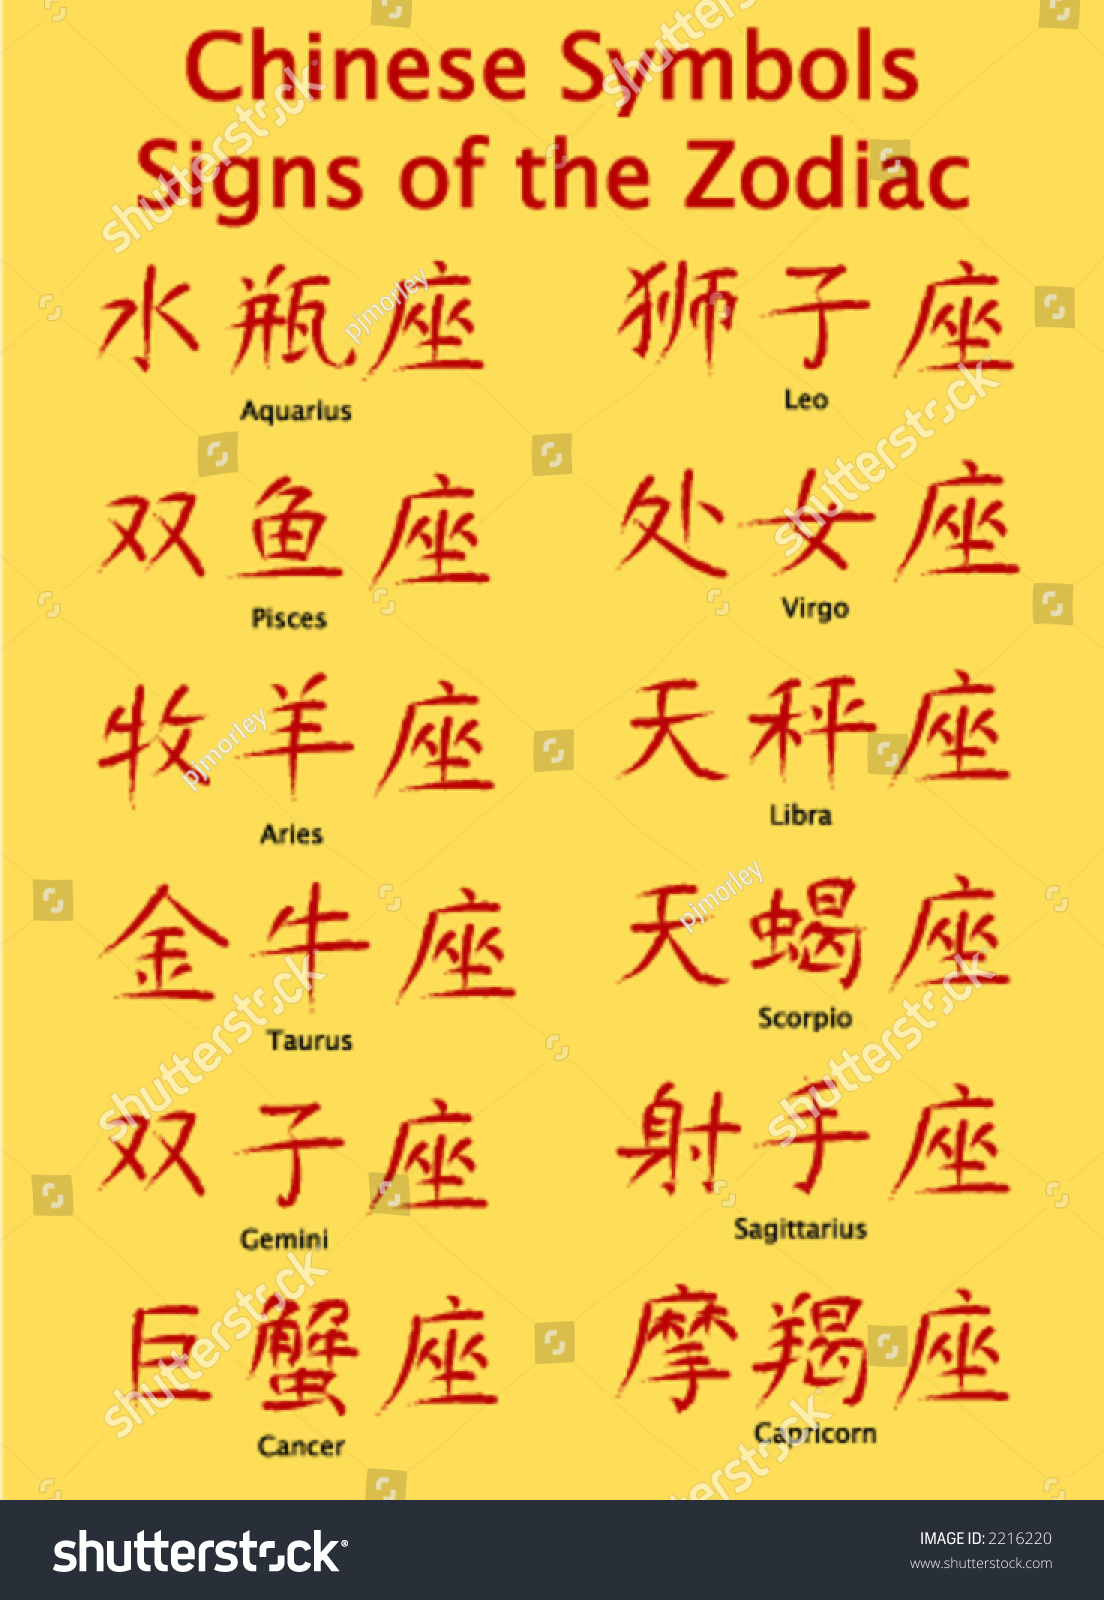 Signs zodiac chinese symbol form stock vector 2216220 shutterstock signs of the zodiac in chinese symbol form biocorpaavc Images